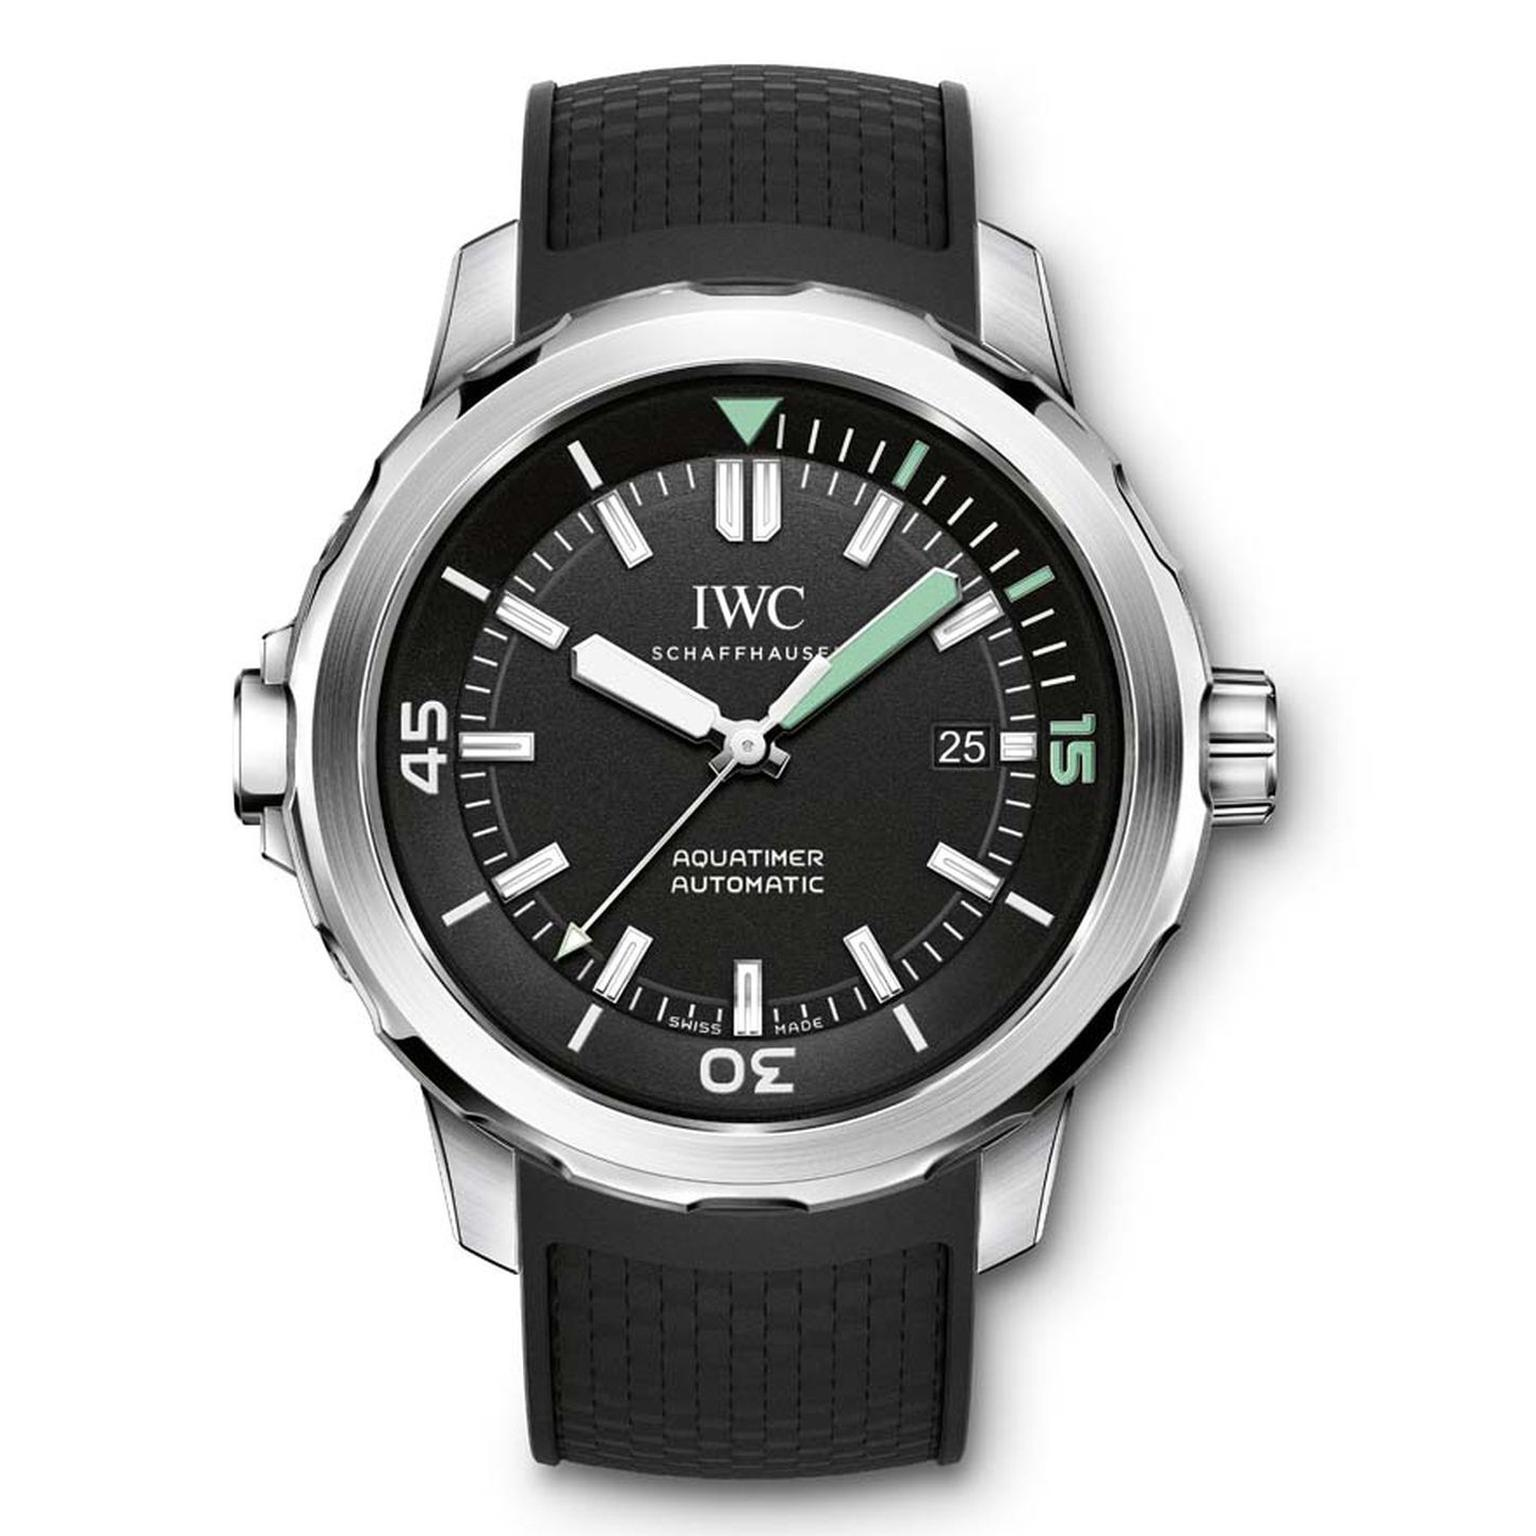 The IWC Aquatimer Automatic is a serious dive watch with just three hands for optimal legibility. The 42mm stainless steel case features IWC's innovative SafeDive system on both the external and interior bezels (£4,250).